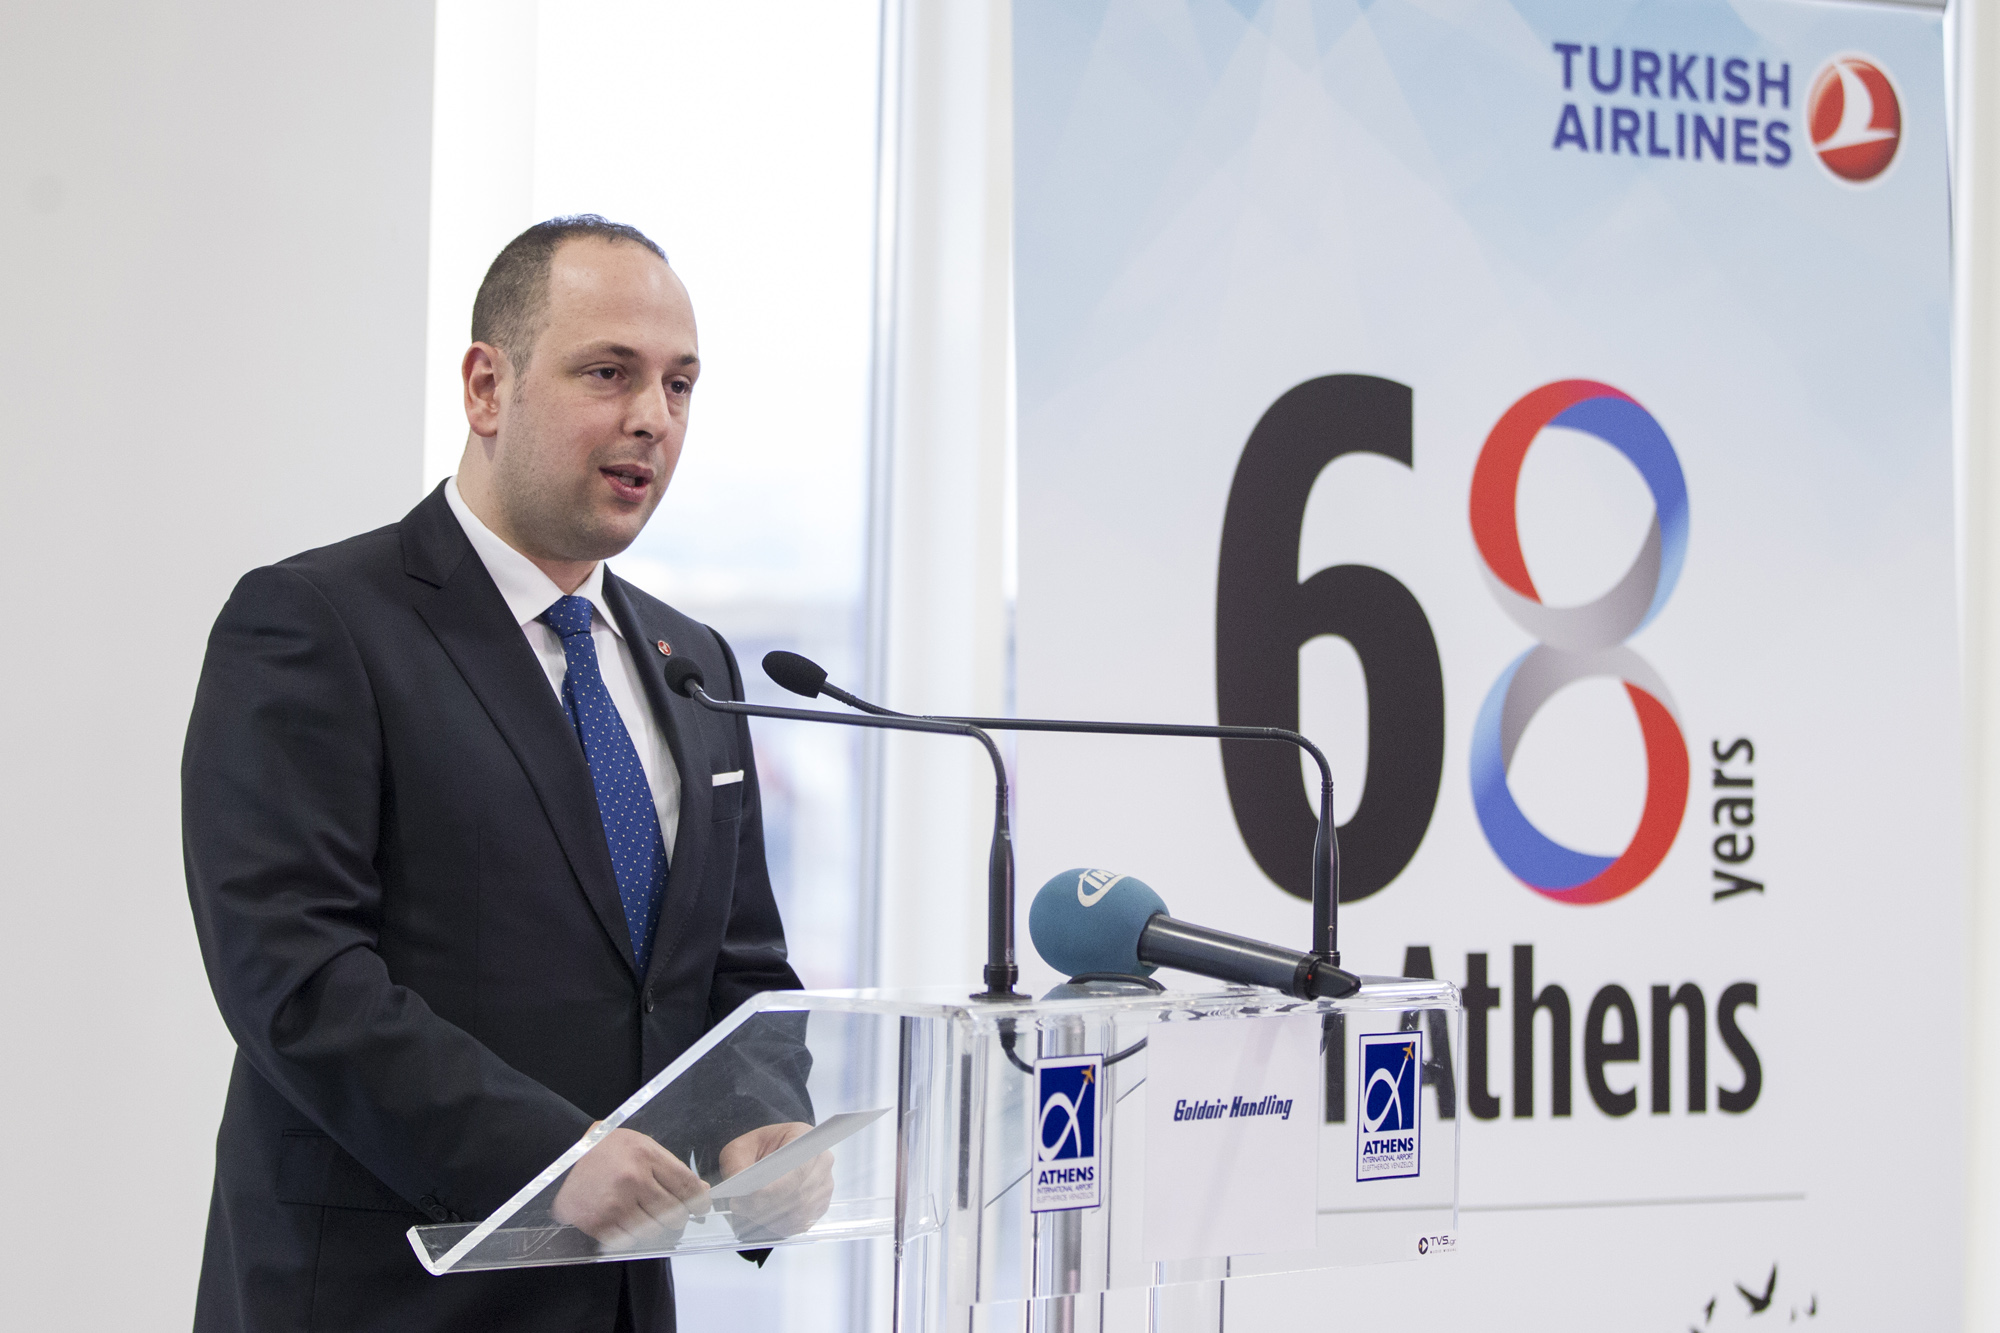 Turkish Airlines celebrates its 68 years of operation in Athens